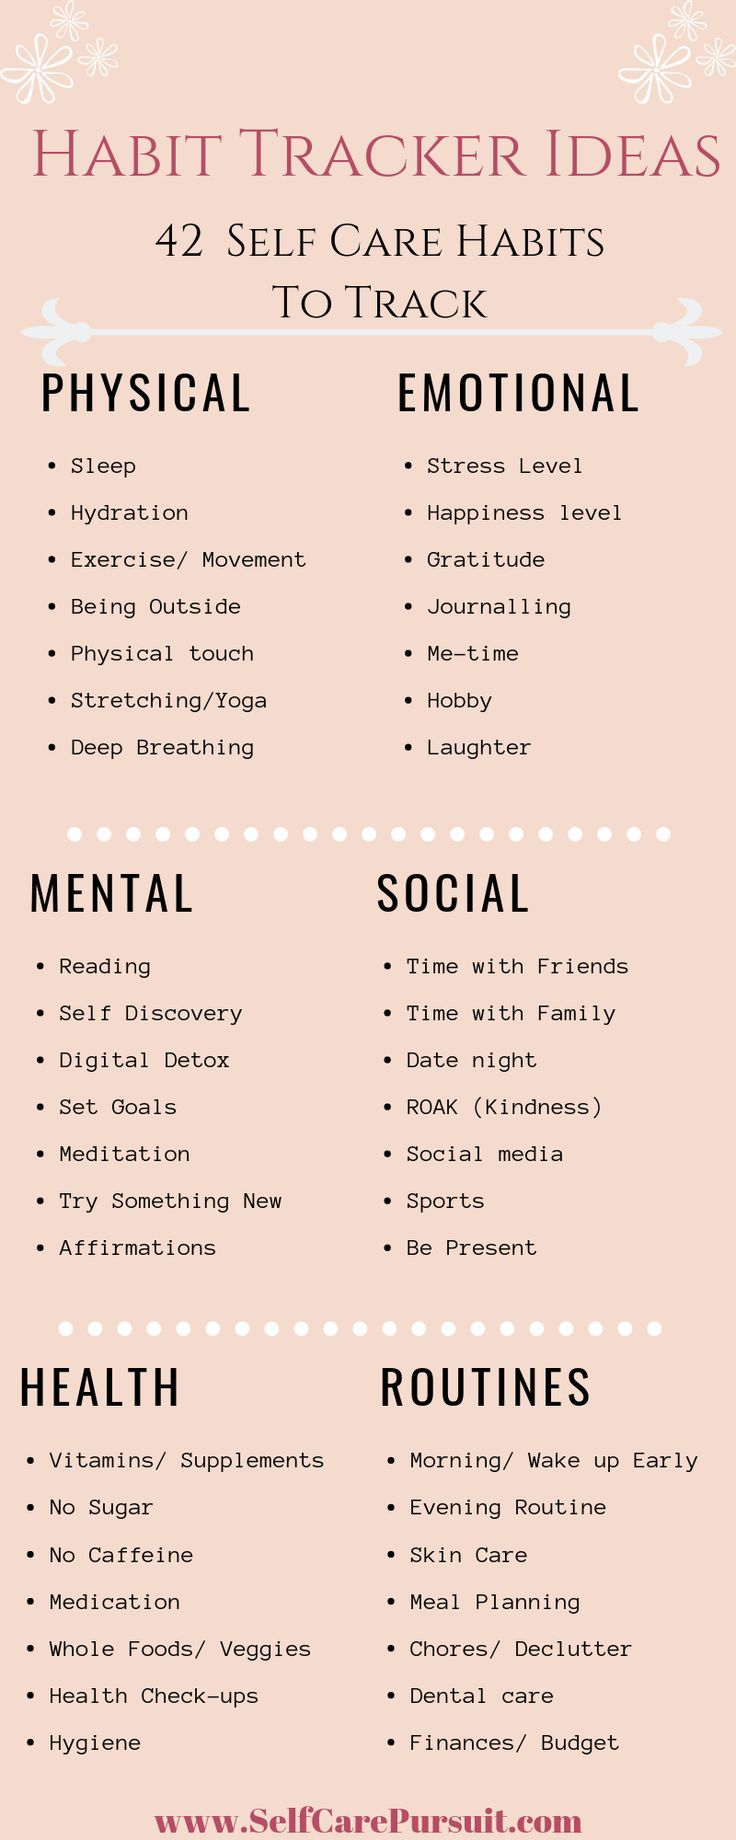 Looking for new Habits to Track to help with your Self Care Routine? Check out the latest blog post from Self Care pursuit highlighting habits to track to for you Physical, Emotional, Mental, and Social Self Care Health! #Mentalhealth #selfcare #SelfCarePursuit #Habit #BulletJournal #HabitTracker